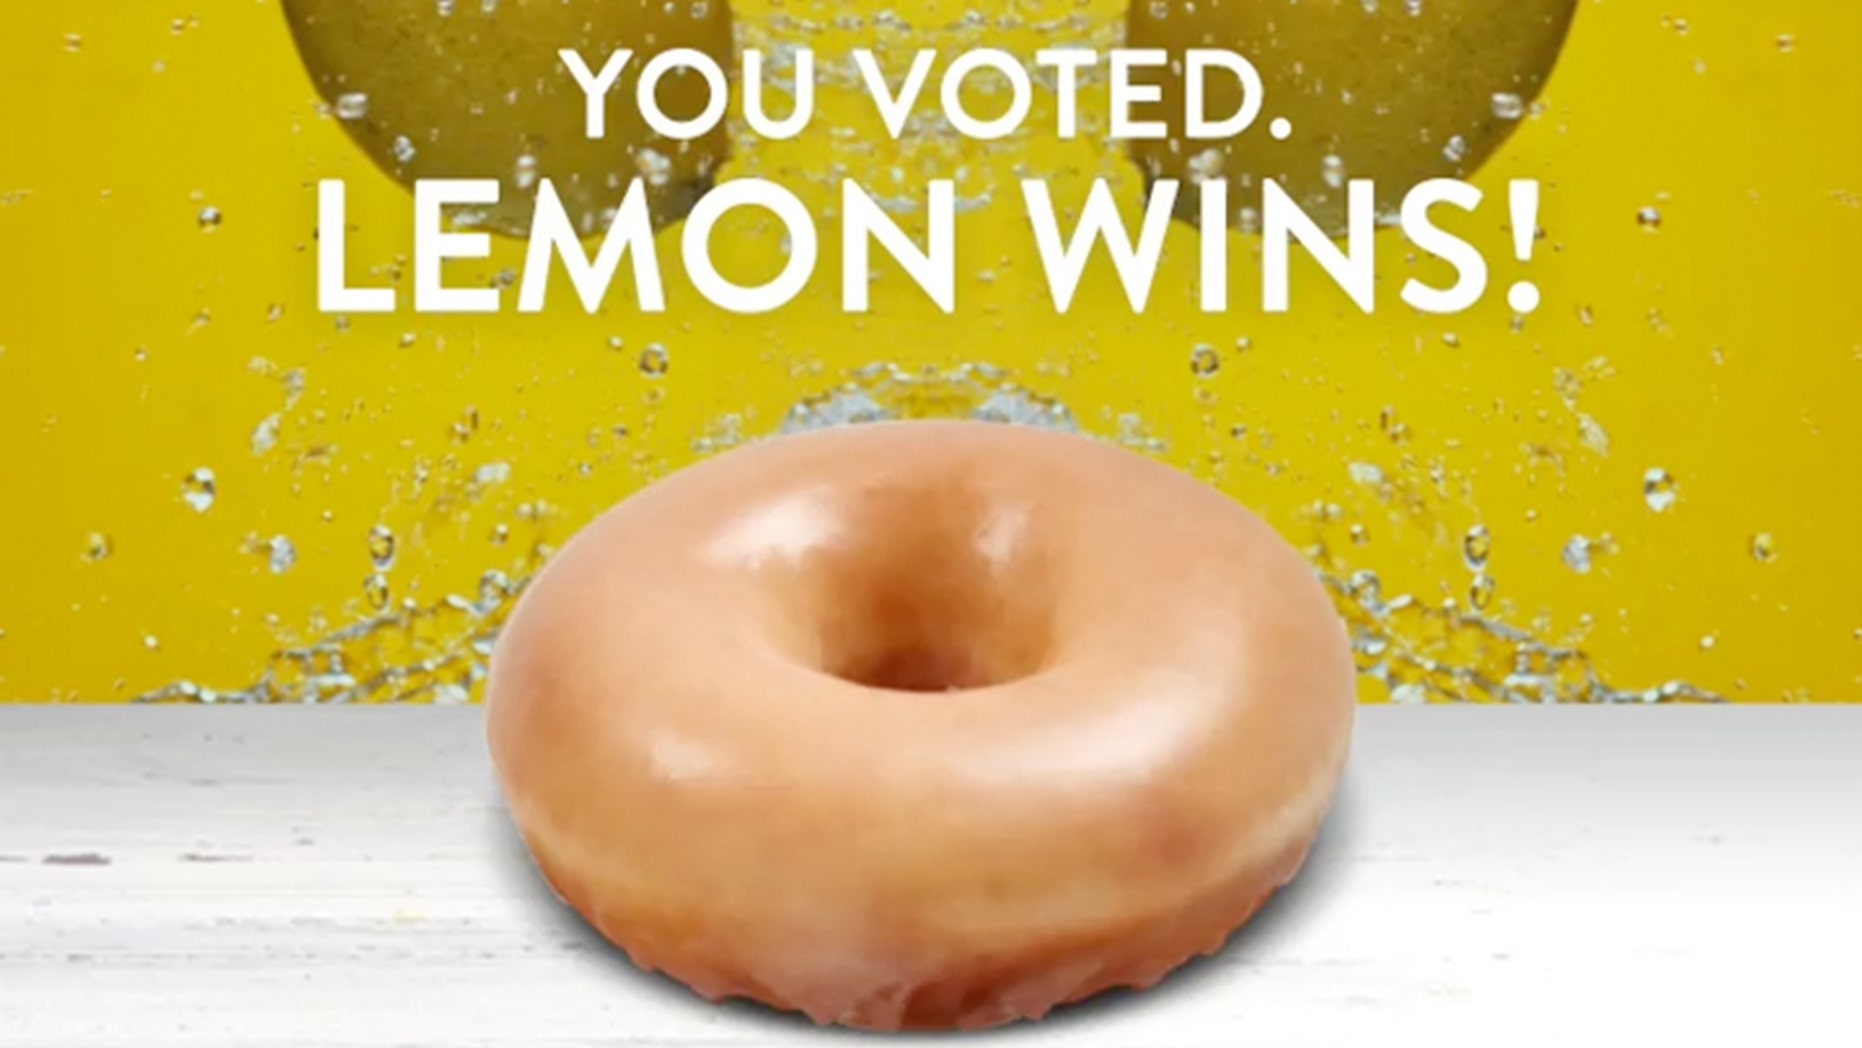 America has spoken, and they have picked lemon to be the glaze flavor for the limited-edition springtime treat.